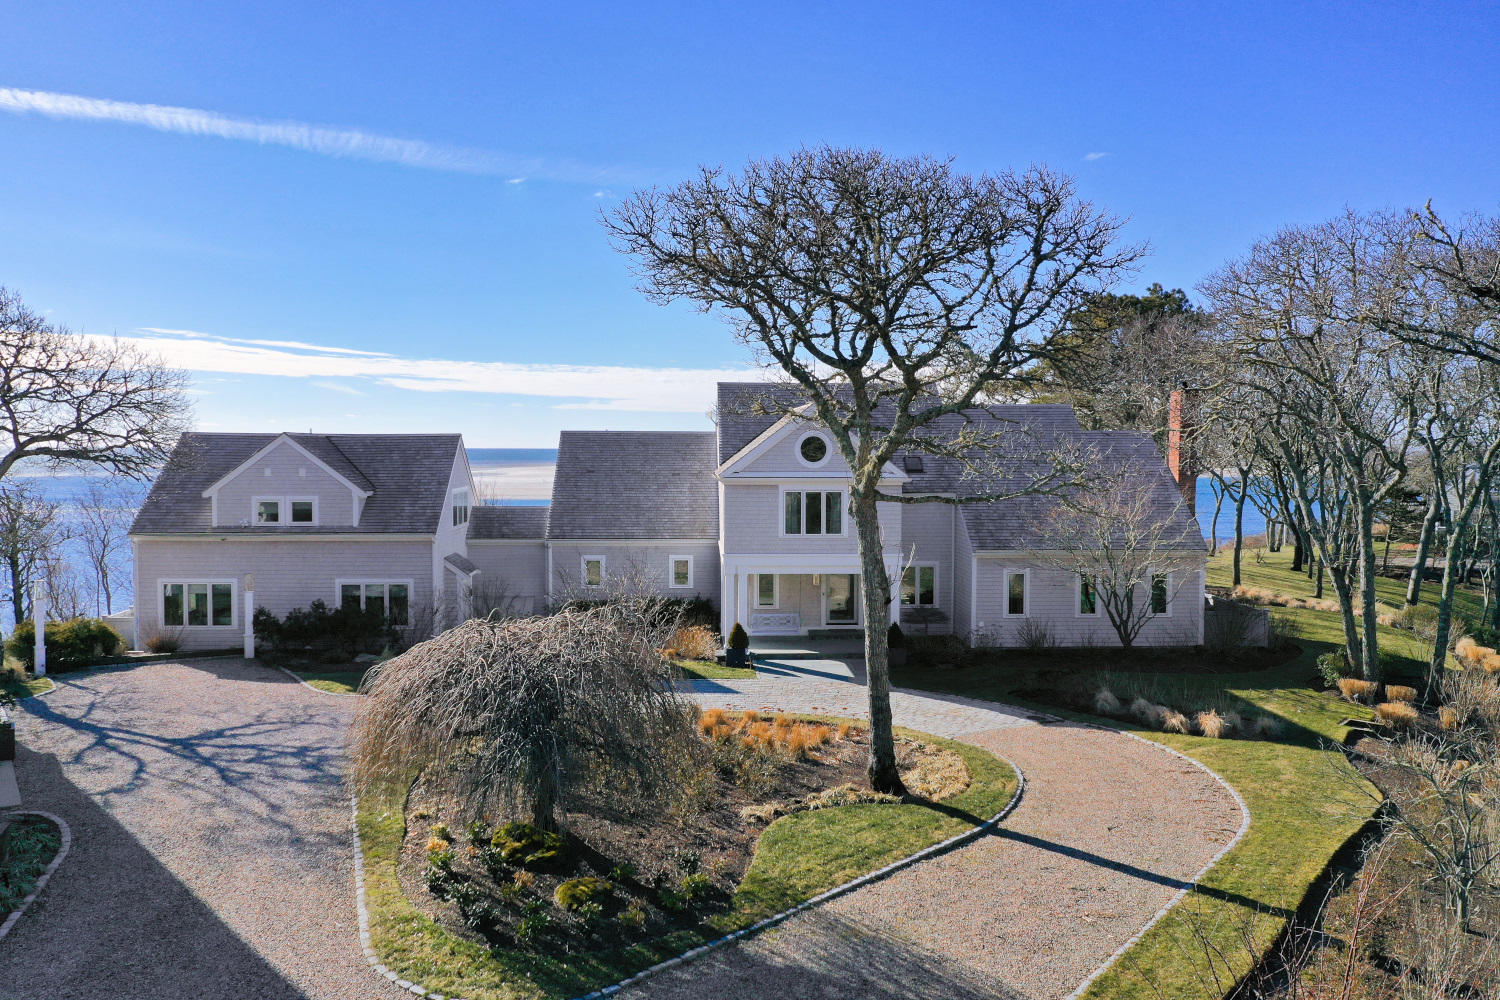 click to view more details 27 Tilipi Run, Chatham, MA 02633